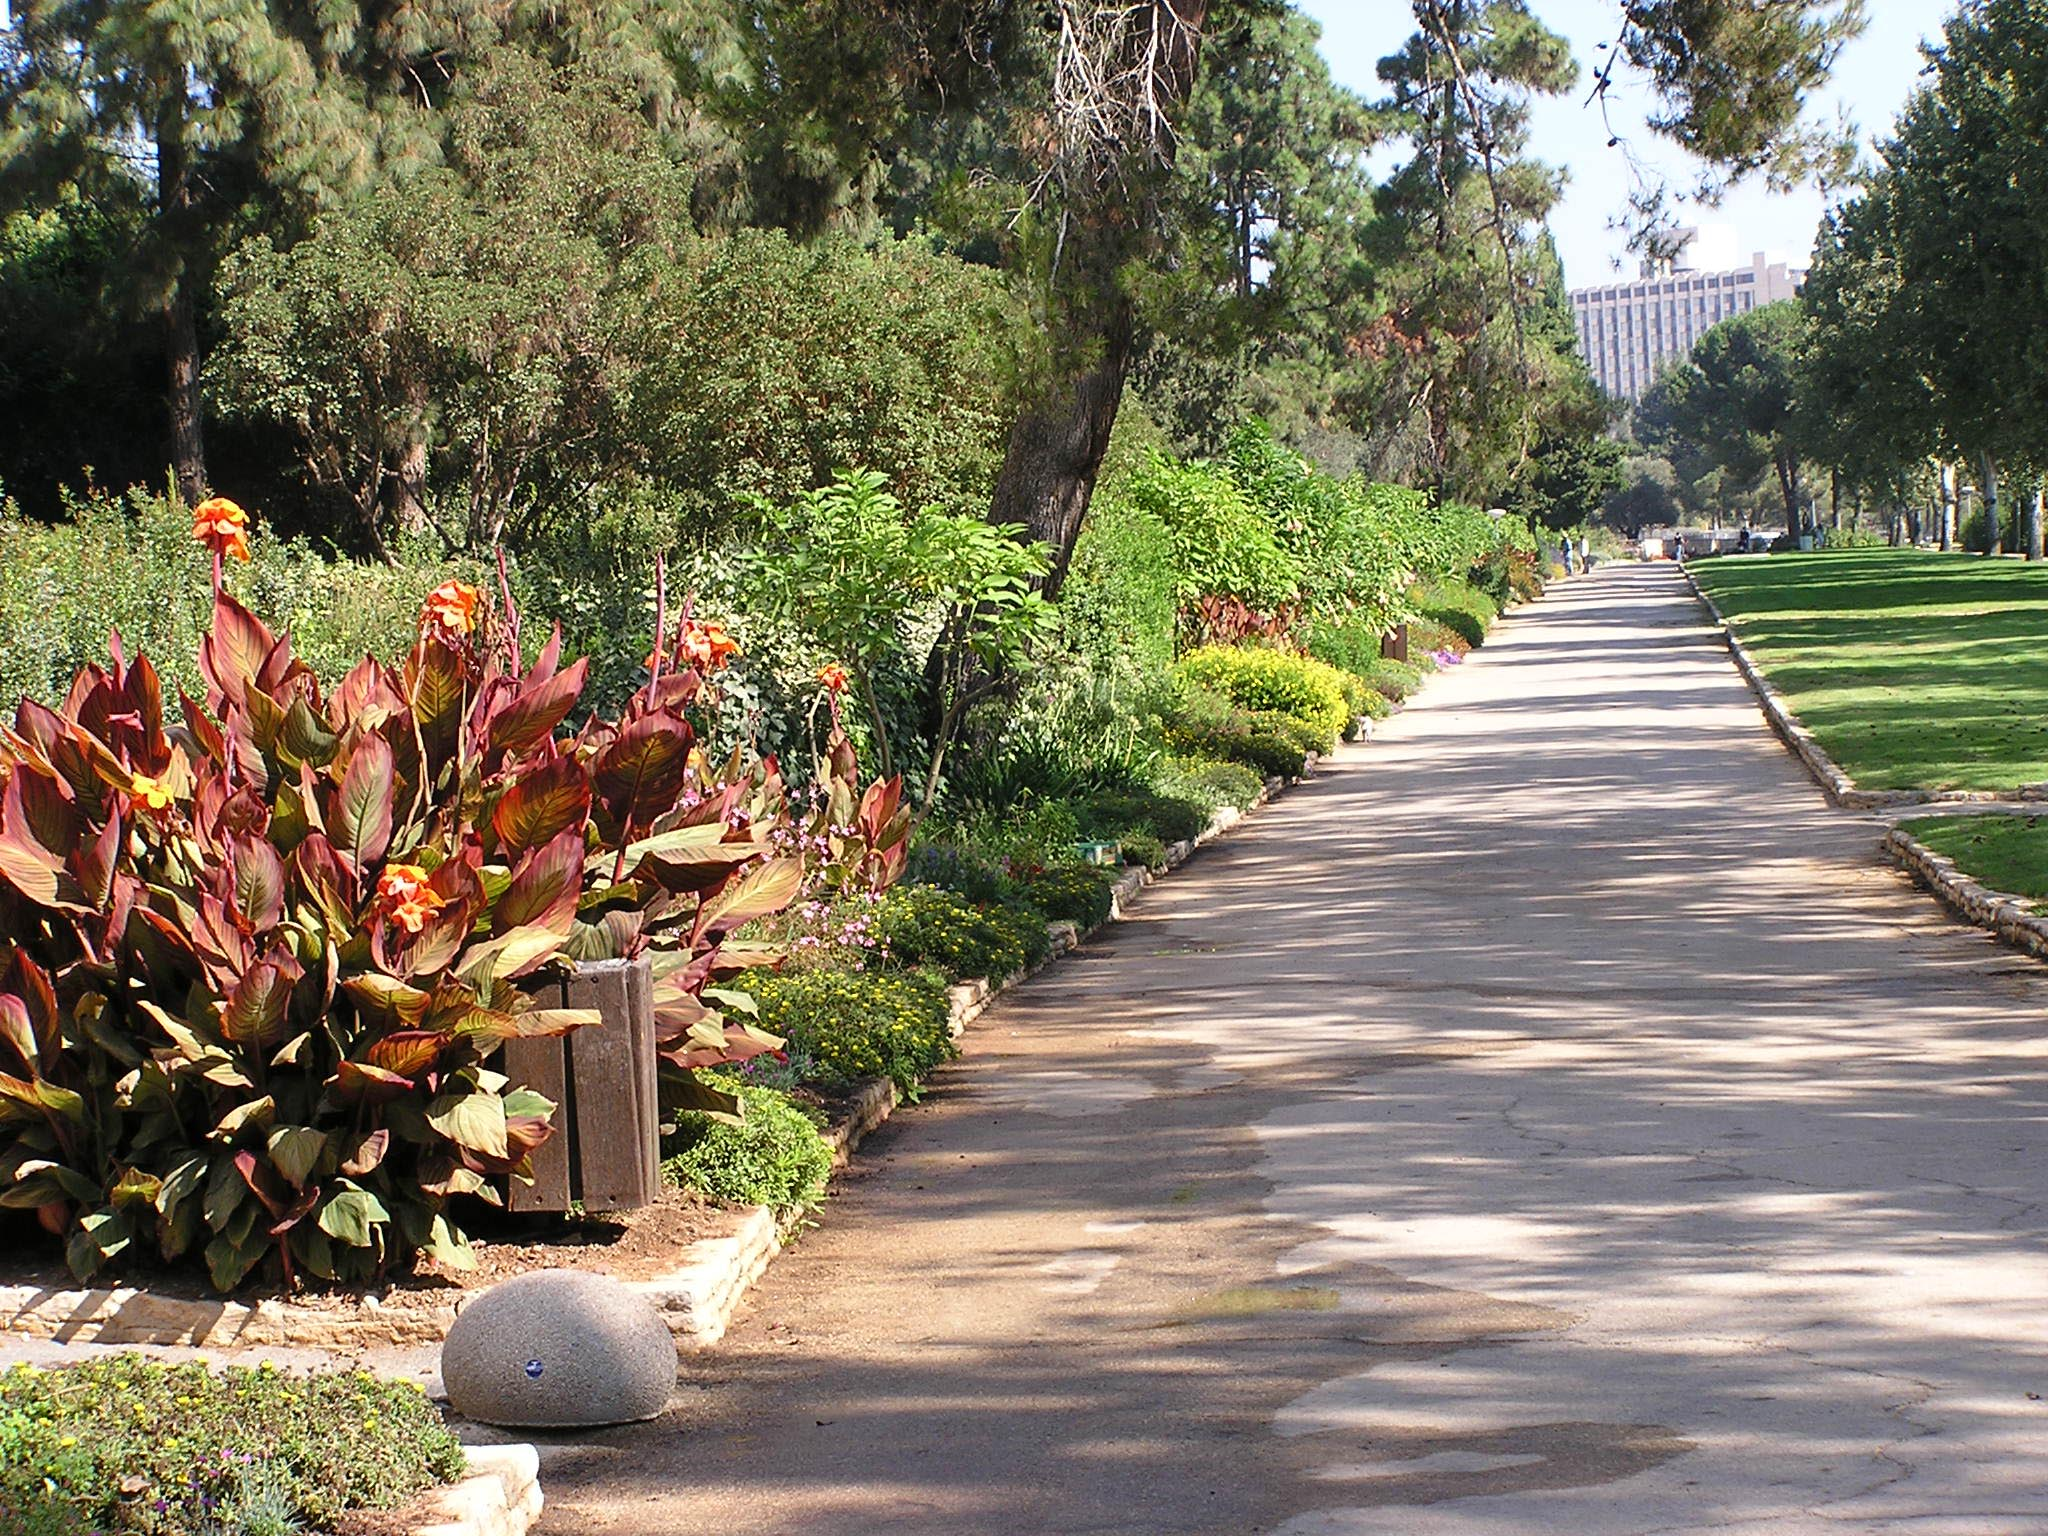 free stock photo of garden at the hebrew university in jerusalem